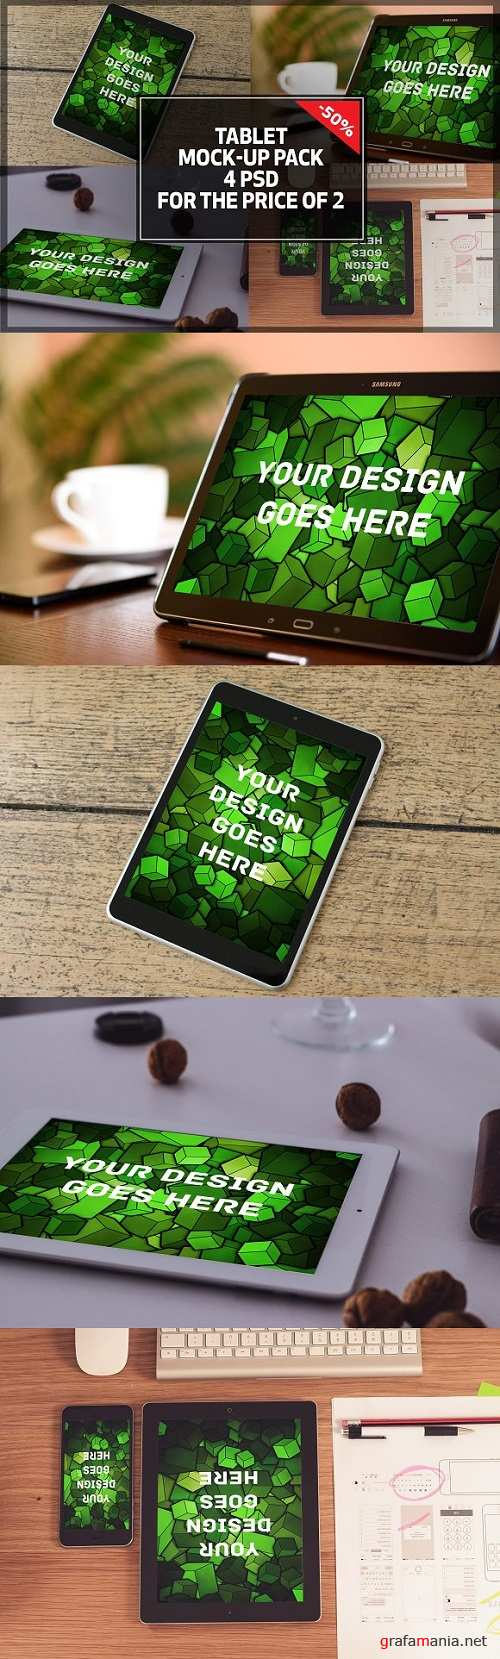 Tablet Mock-up Pack#4 - 1084779